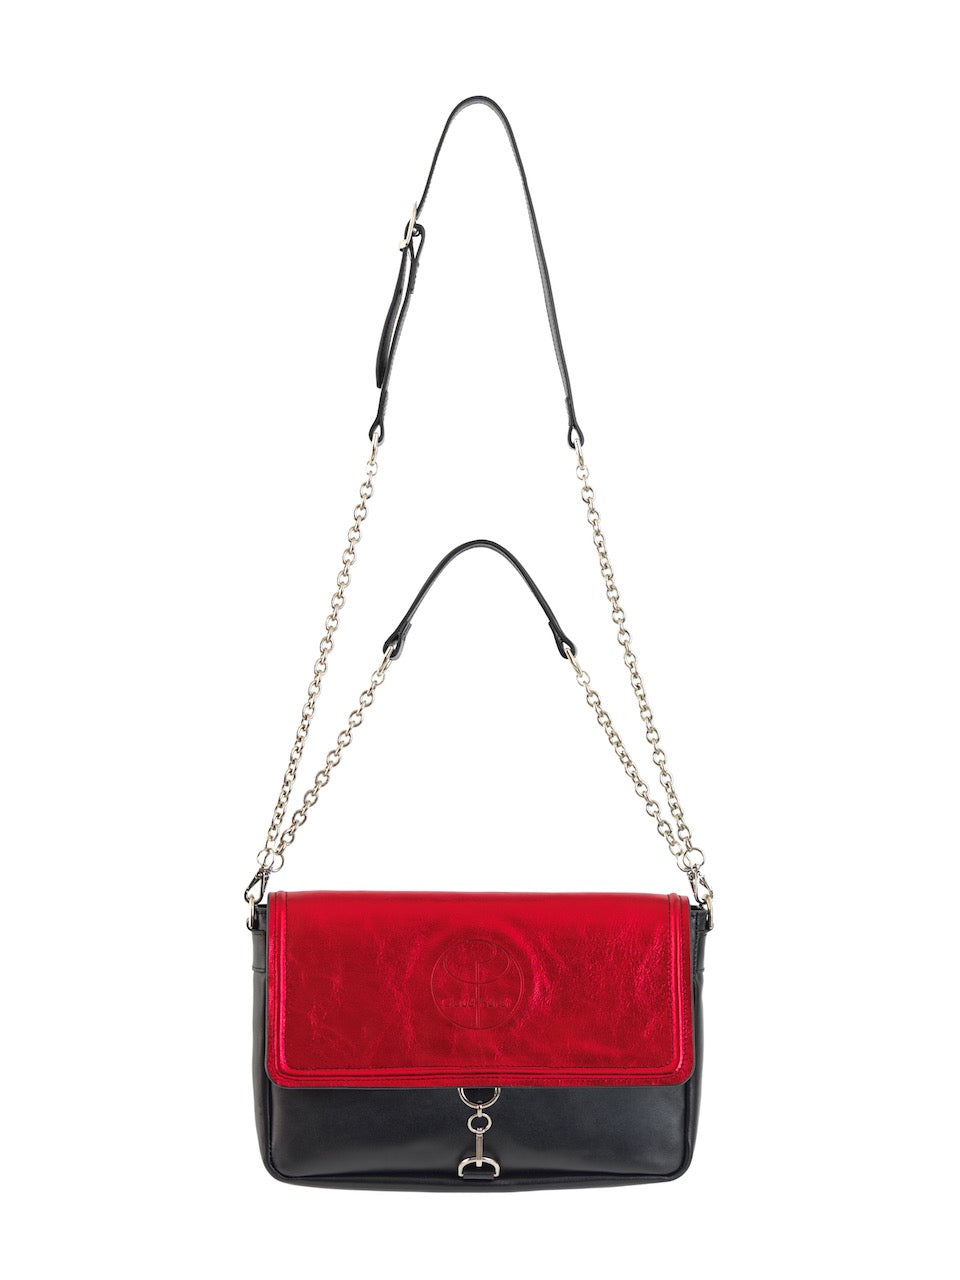 Claudia Fürst • Leather Clutch Bag • Red Red